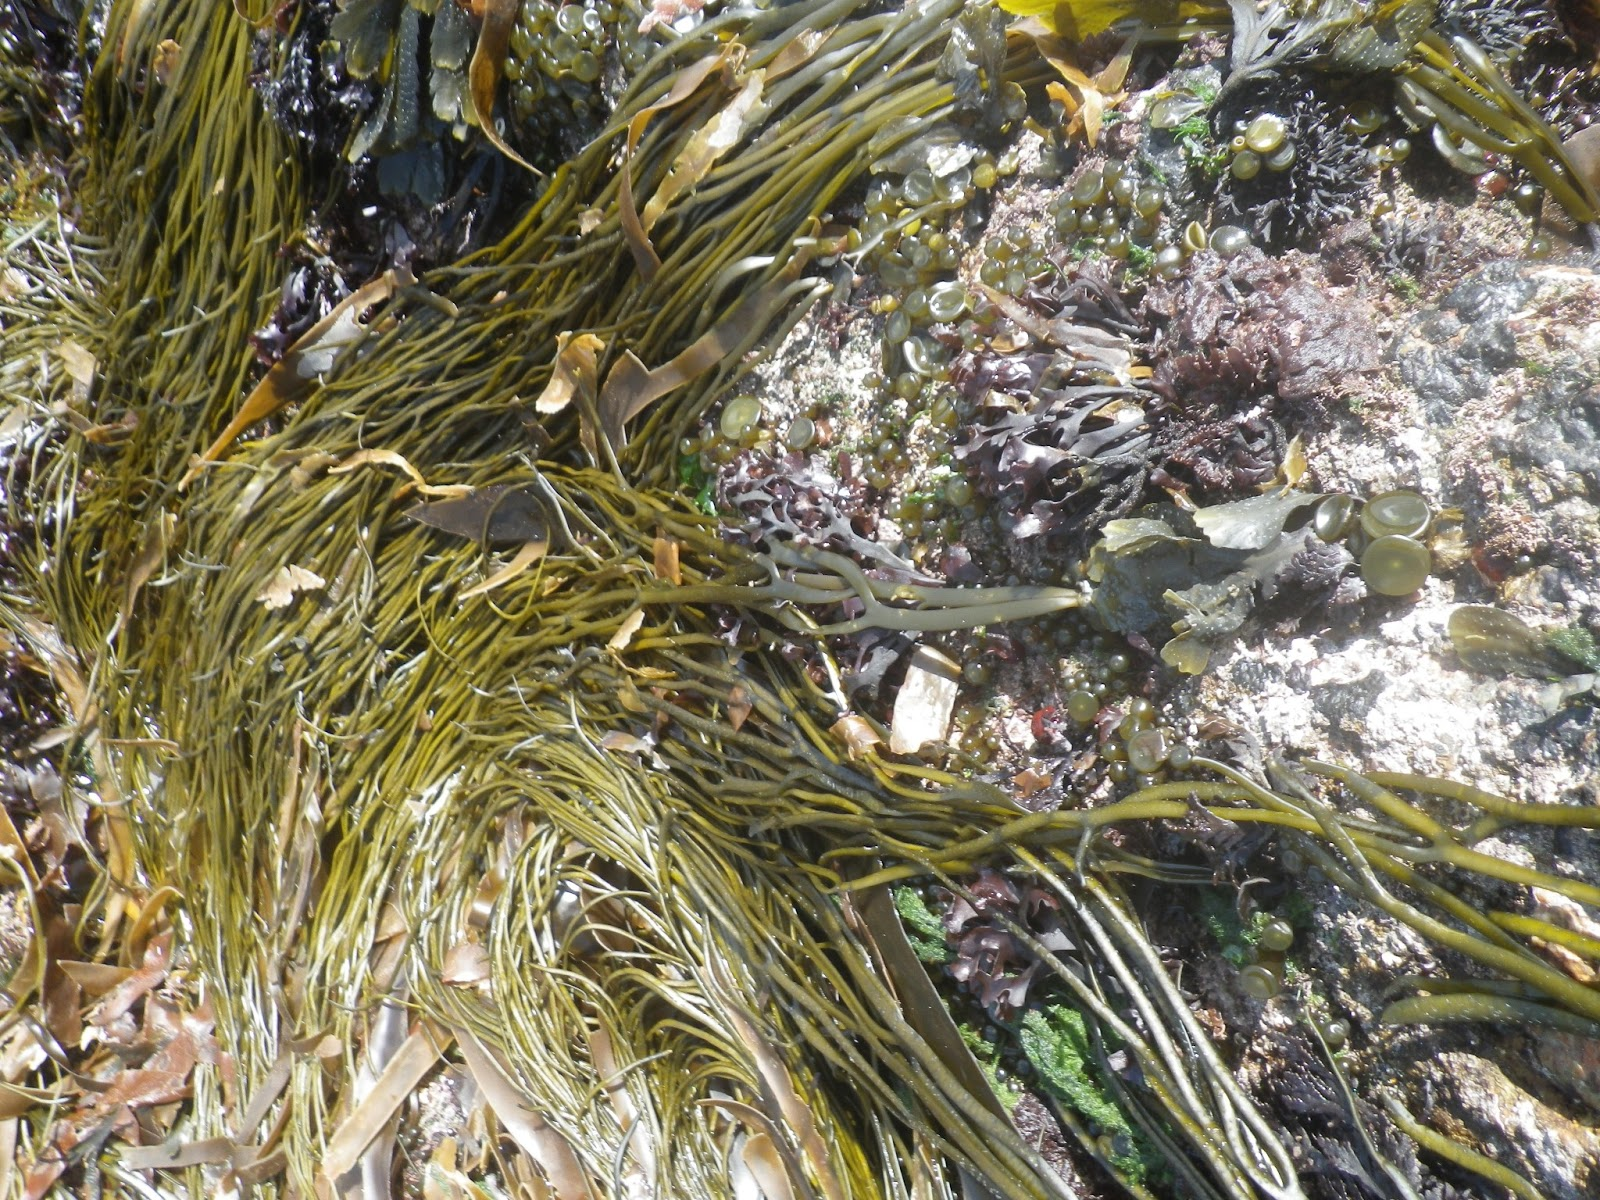 Rock Pooling Rock Pooling Destination White Island Isles Of Scilly